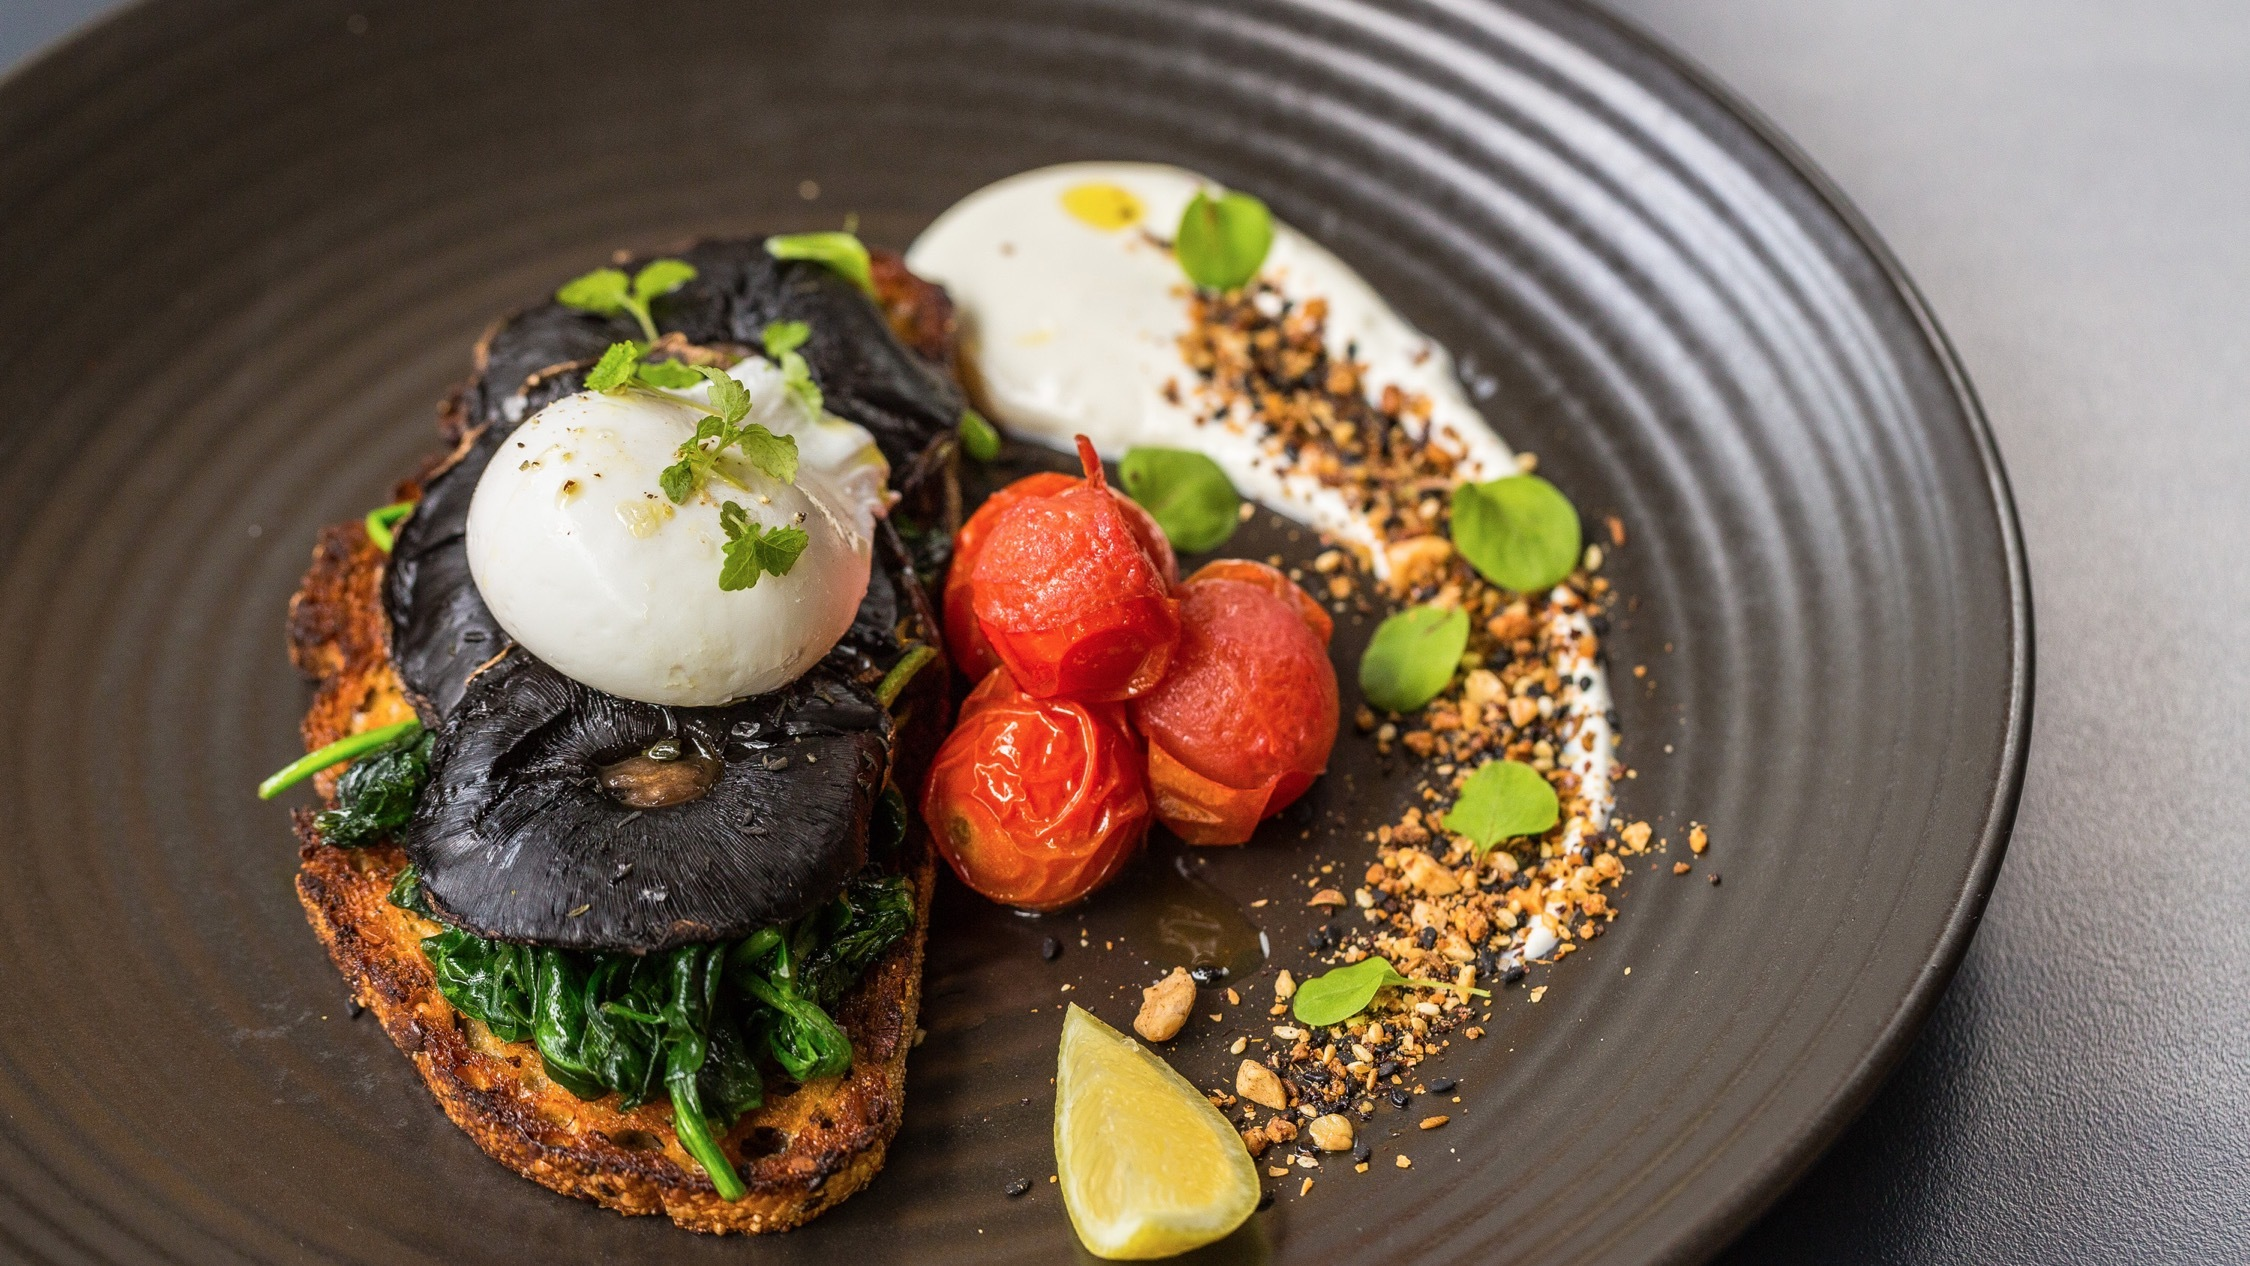 20 great Brisbane dishes for under $20